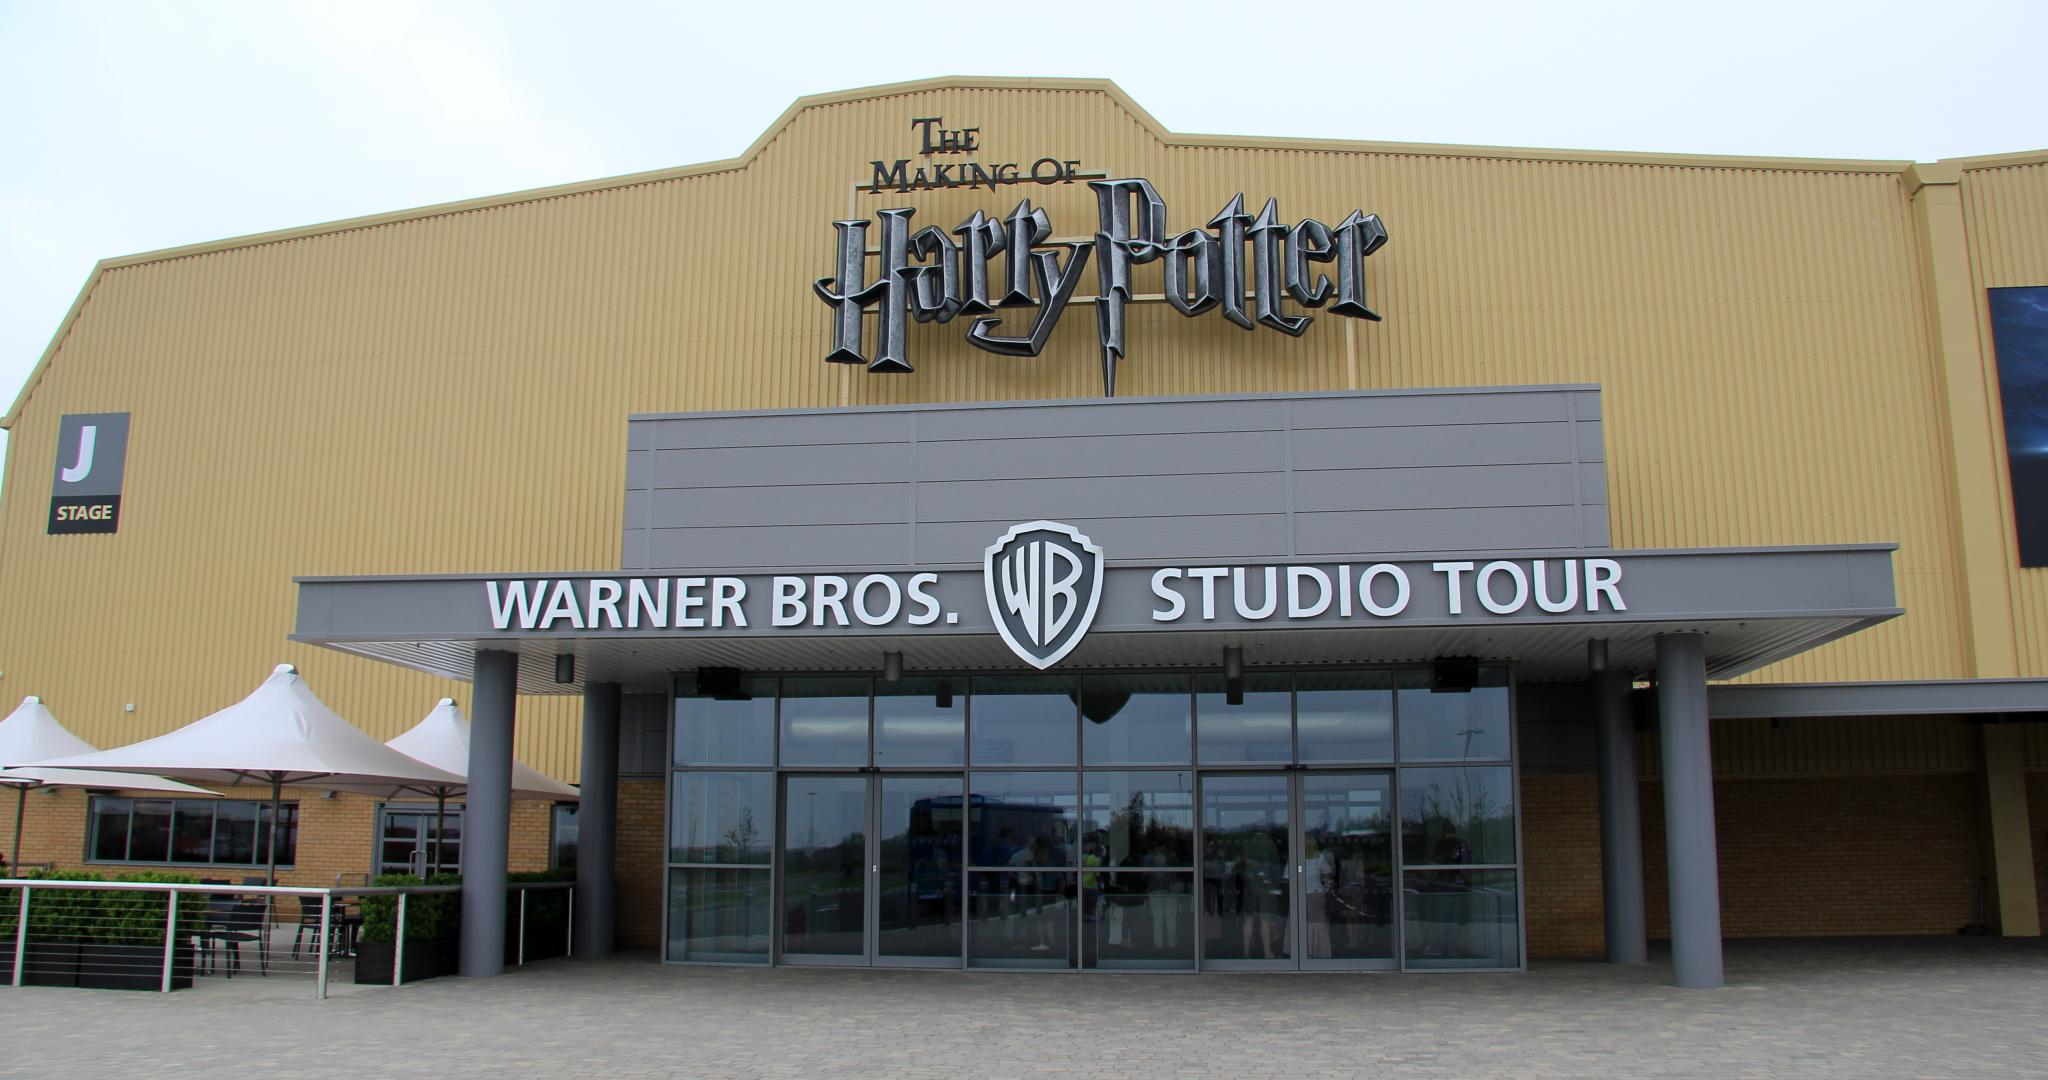 Warner Bros  Studios, Leavesden - Wikipedia